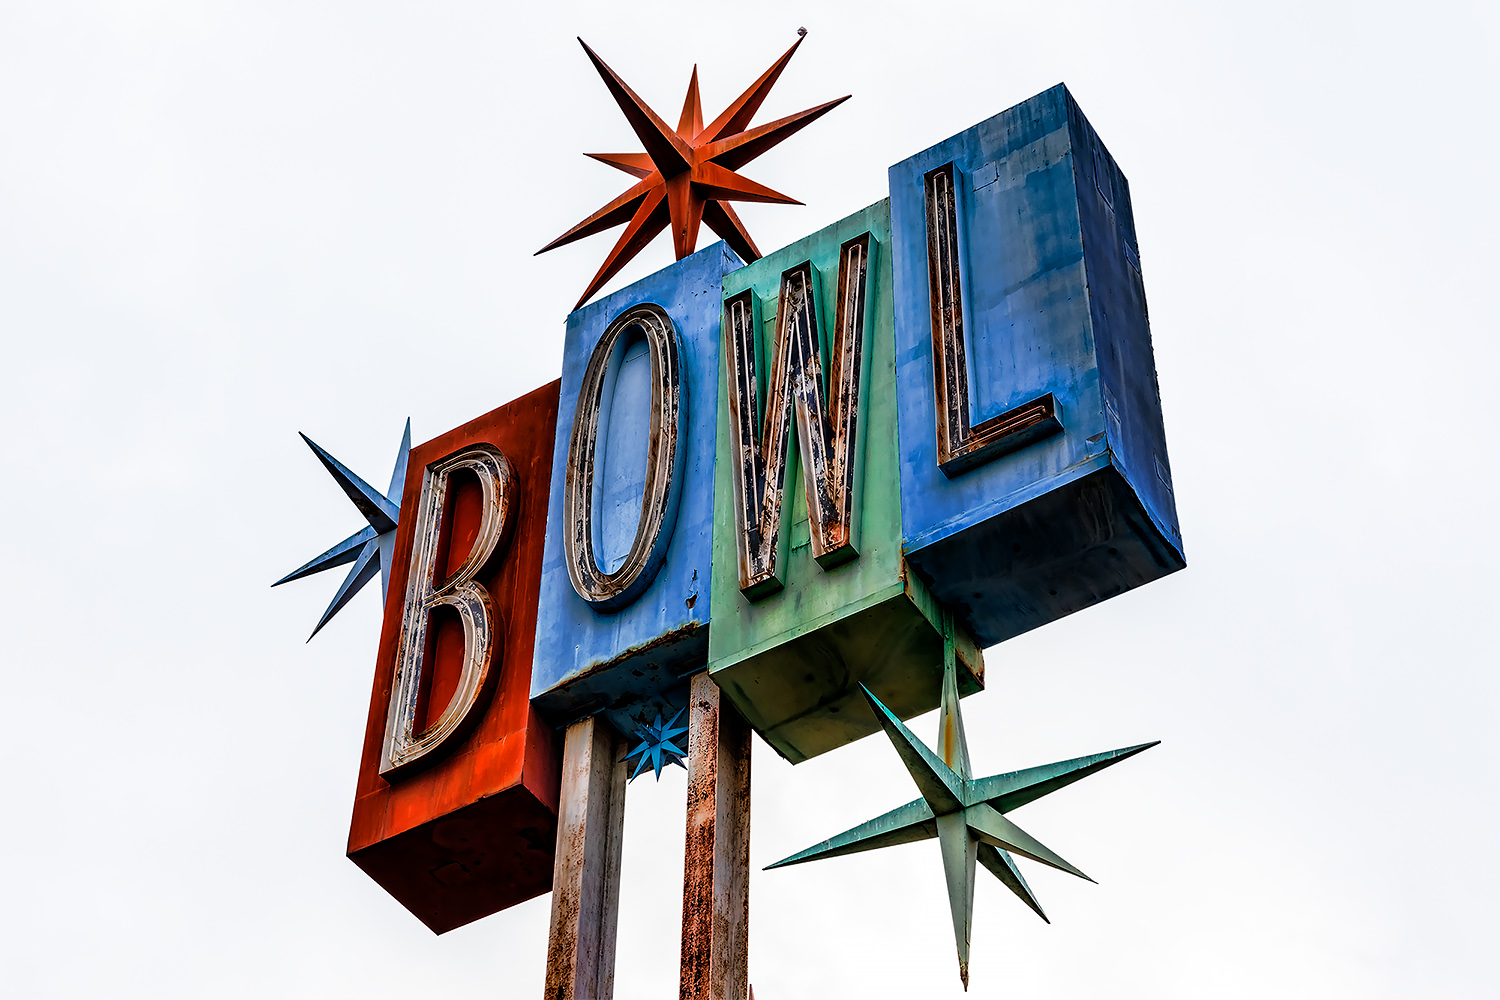 retro-bowling-alley-sign-contrast-kelley-king-photography-2.jpg